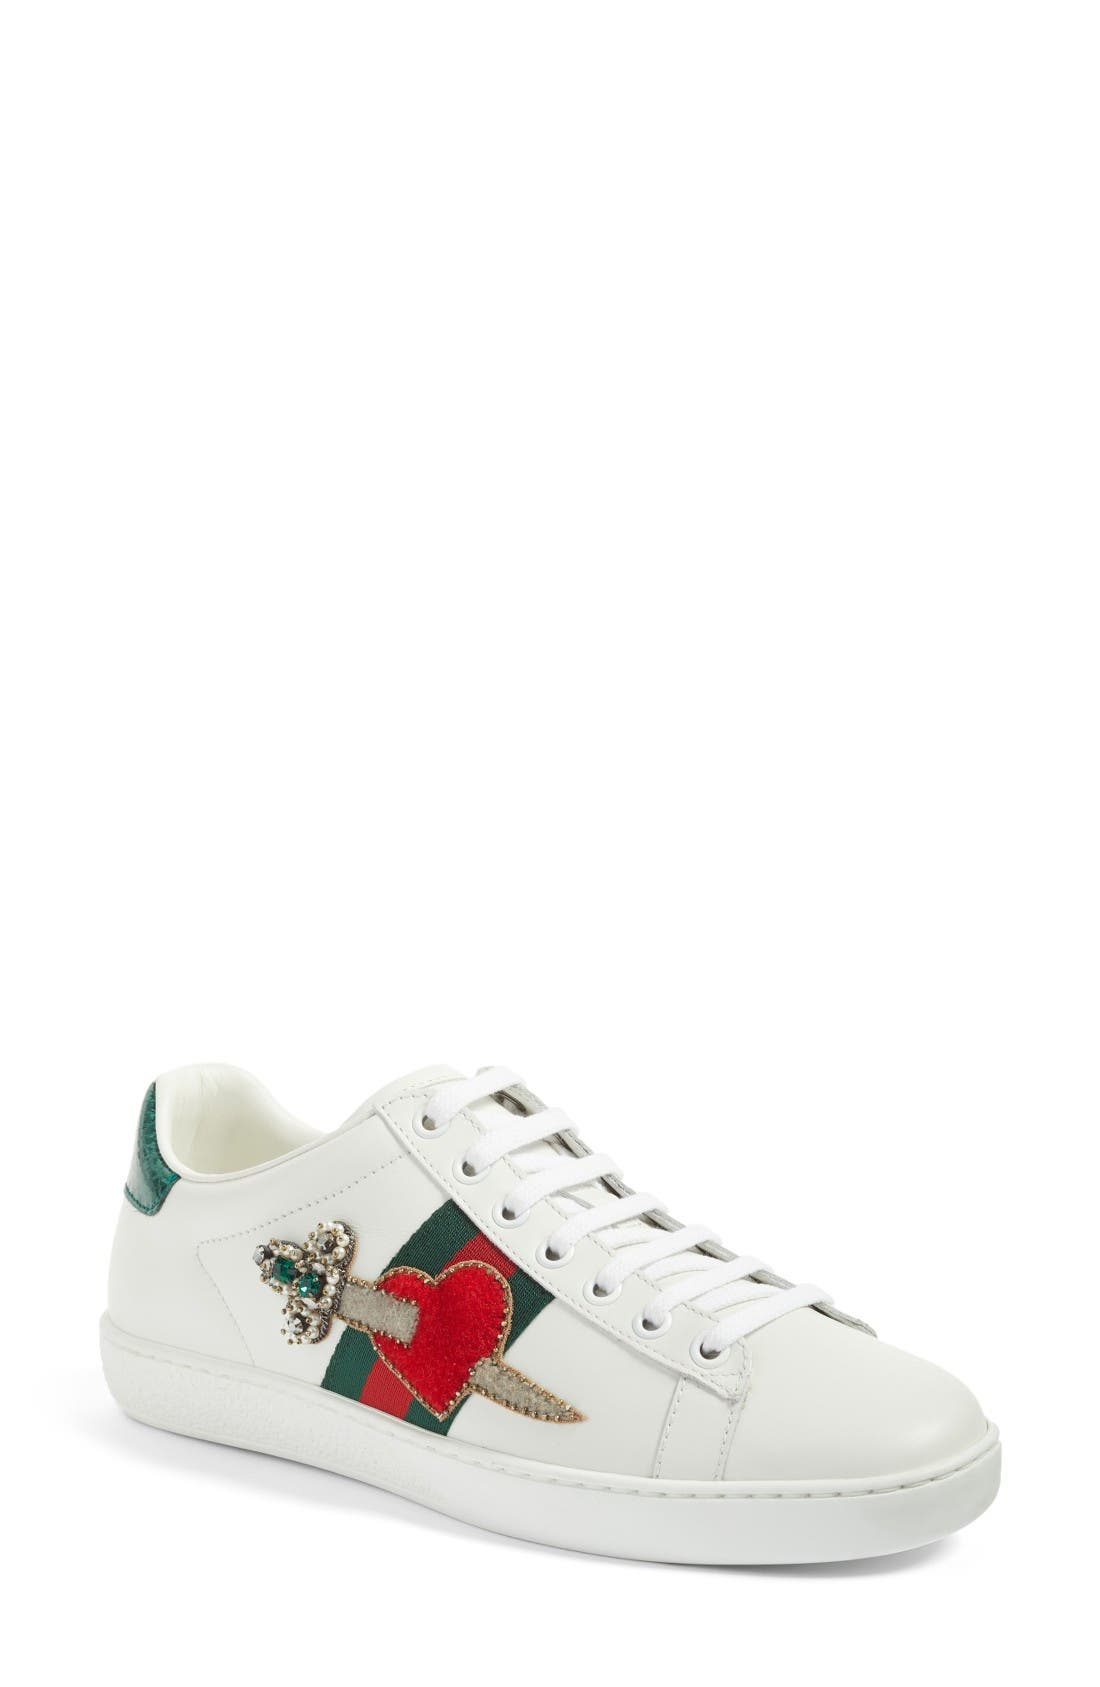 GUCCI NEW ACE PIERCED HEART LEATHER SNEAKERS, WHITE